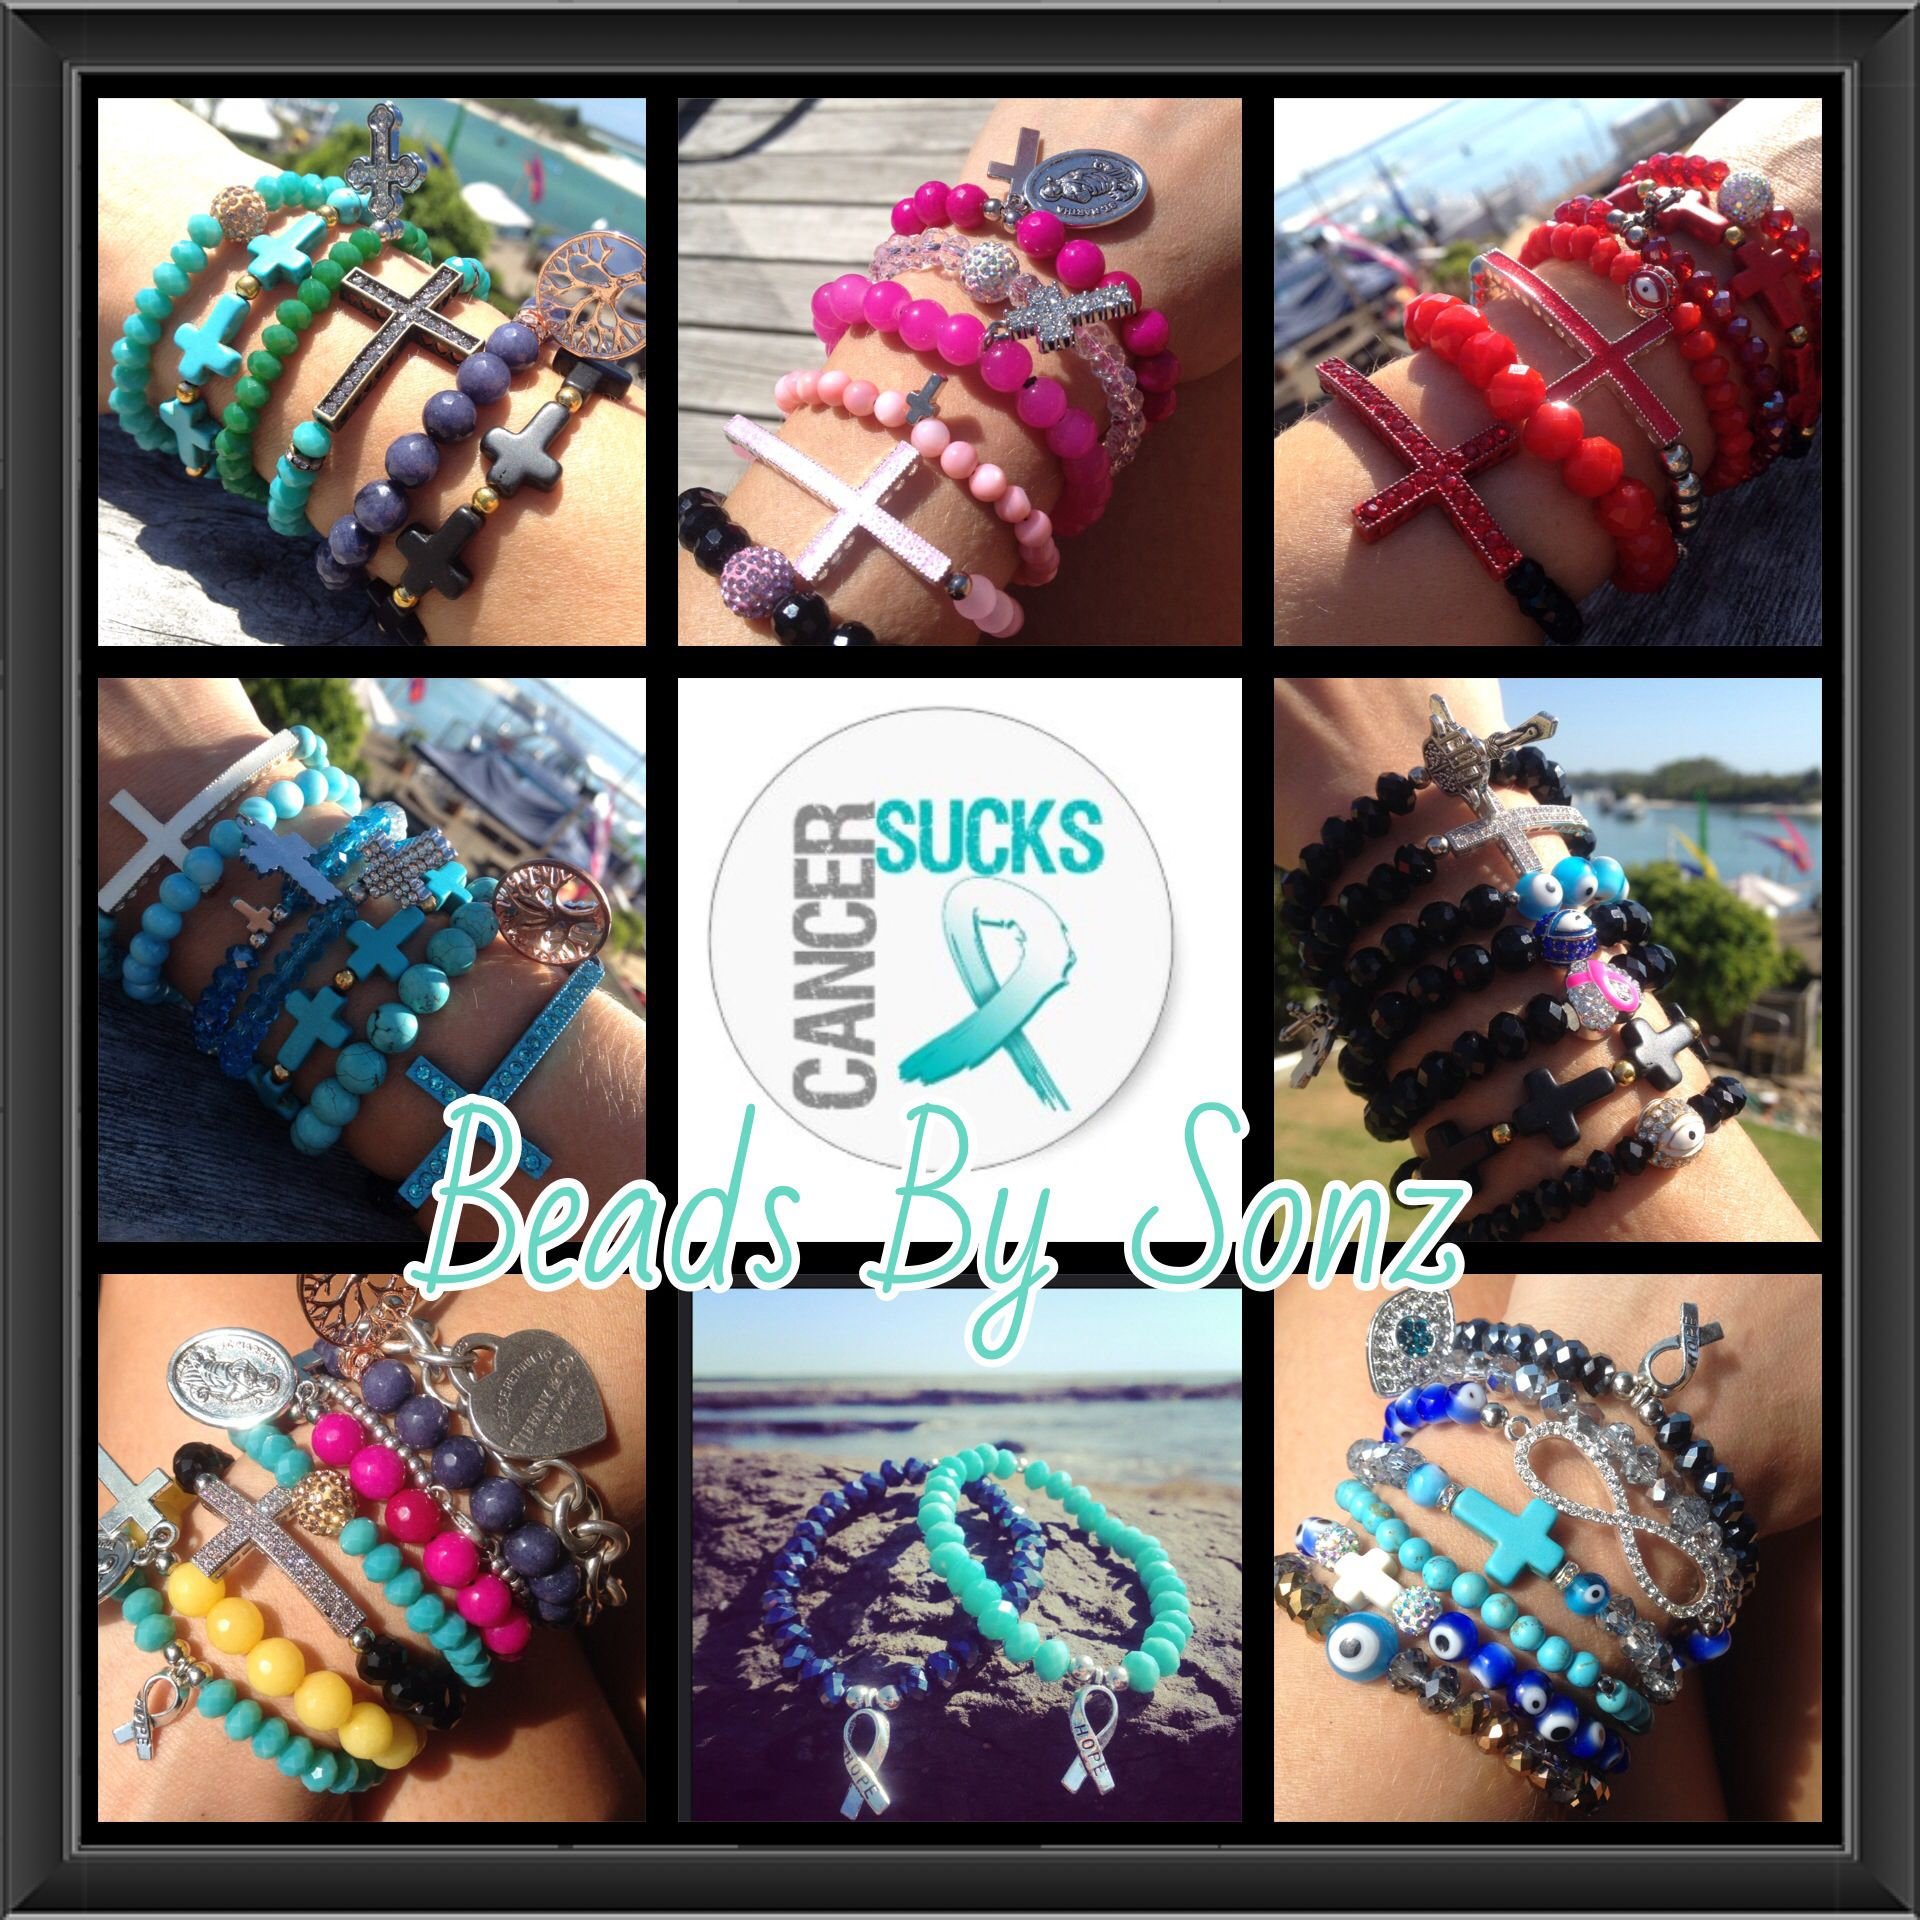 Please follow my collection on Pinterest and Instagram, like Facebook page beads by Sonz